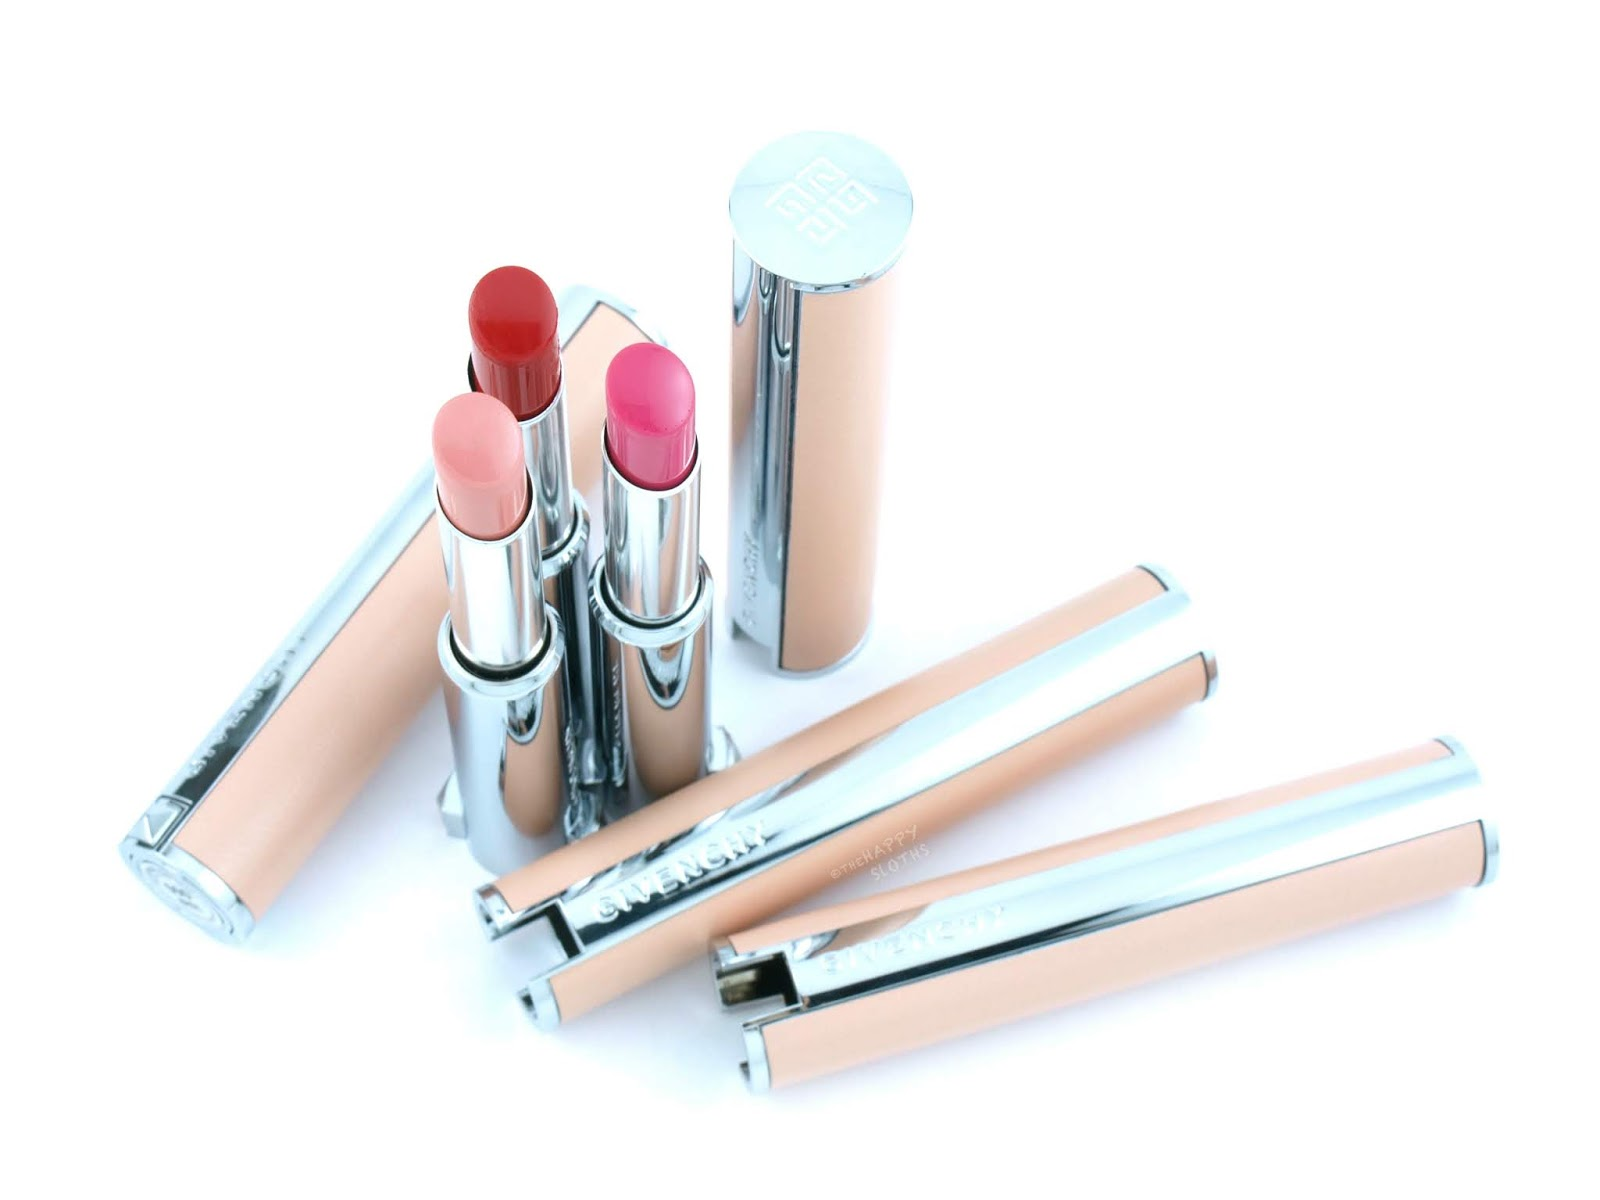 Givenchy | Le Rose Perfecto Beautifying Lip Balm: Review and Swatches